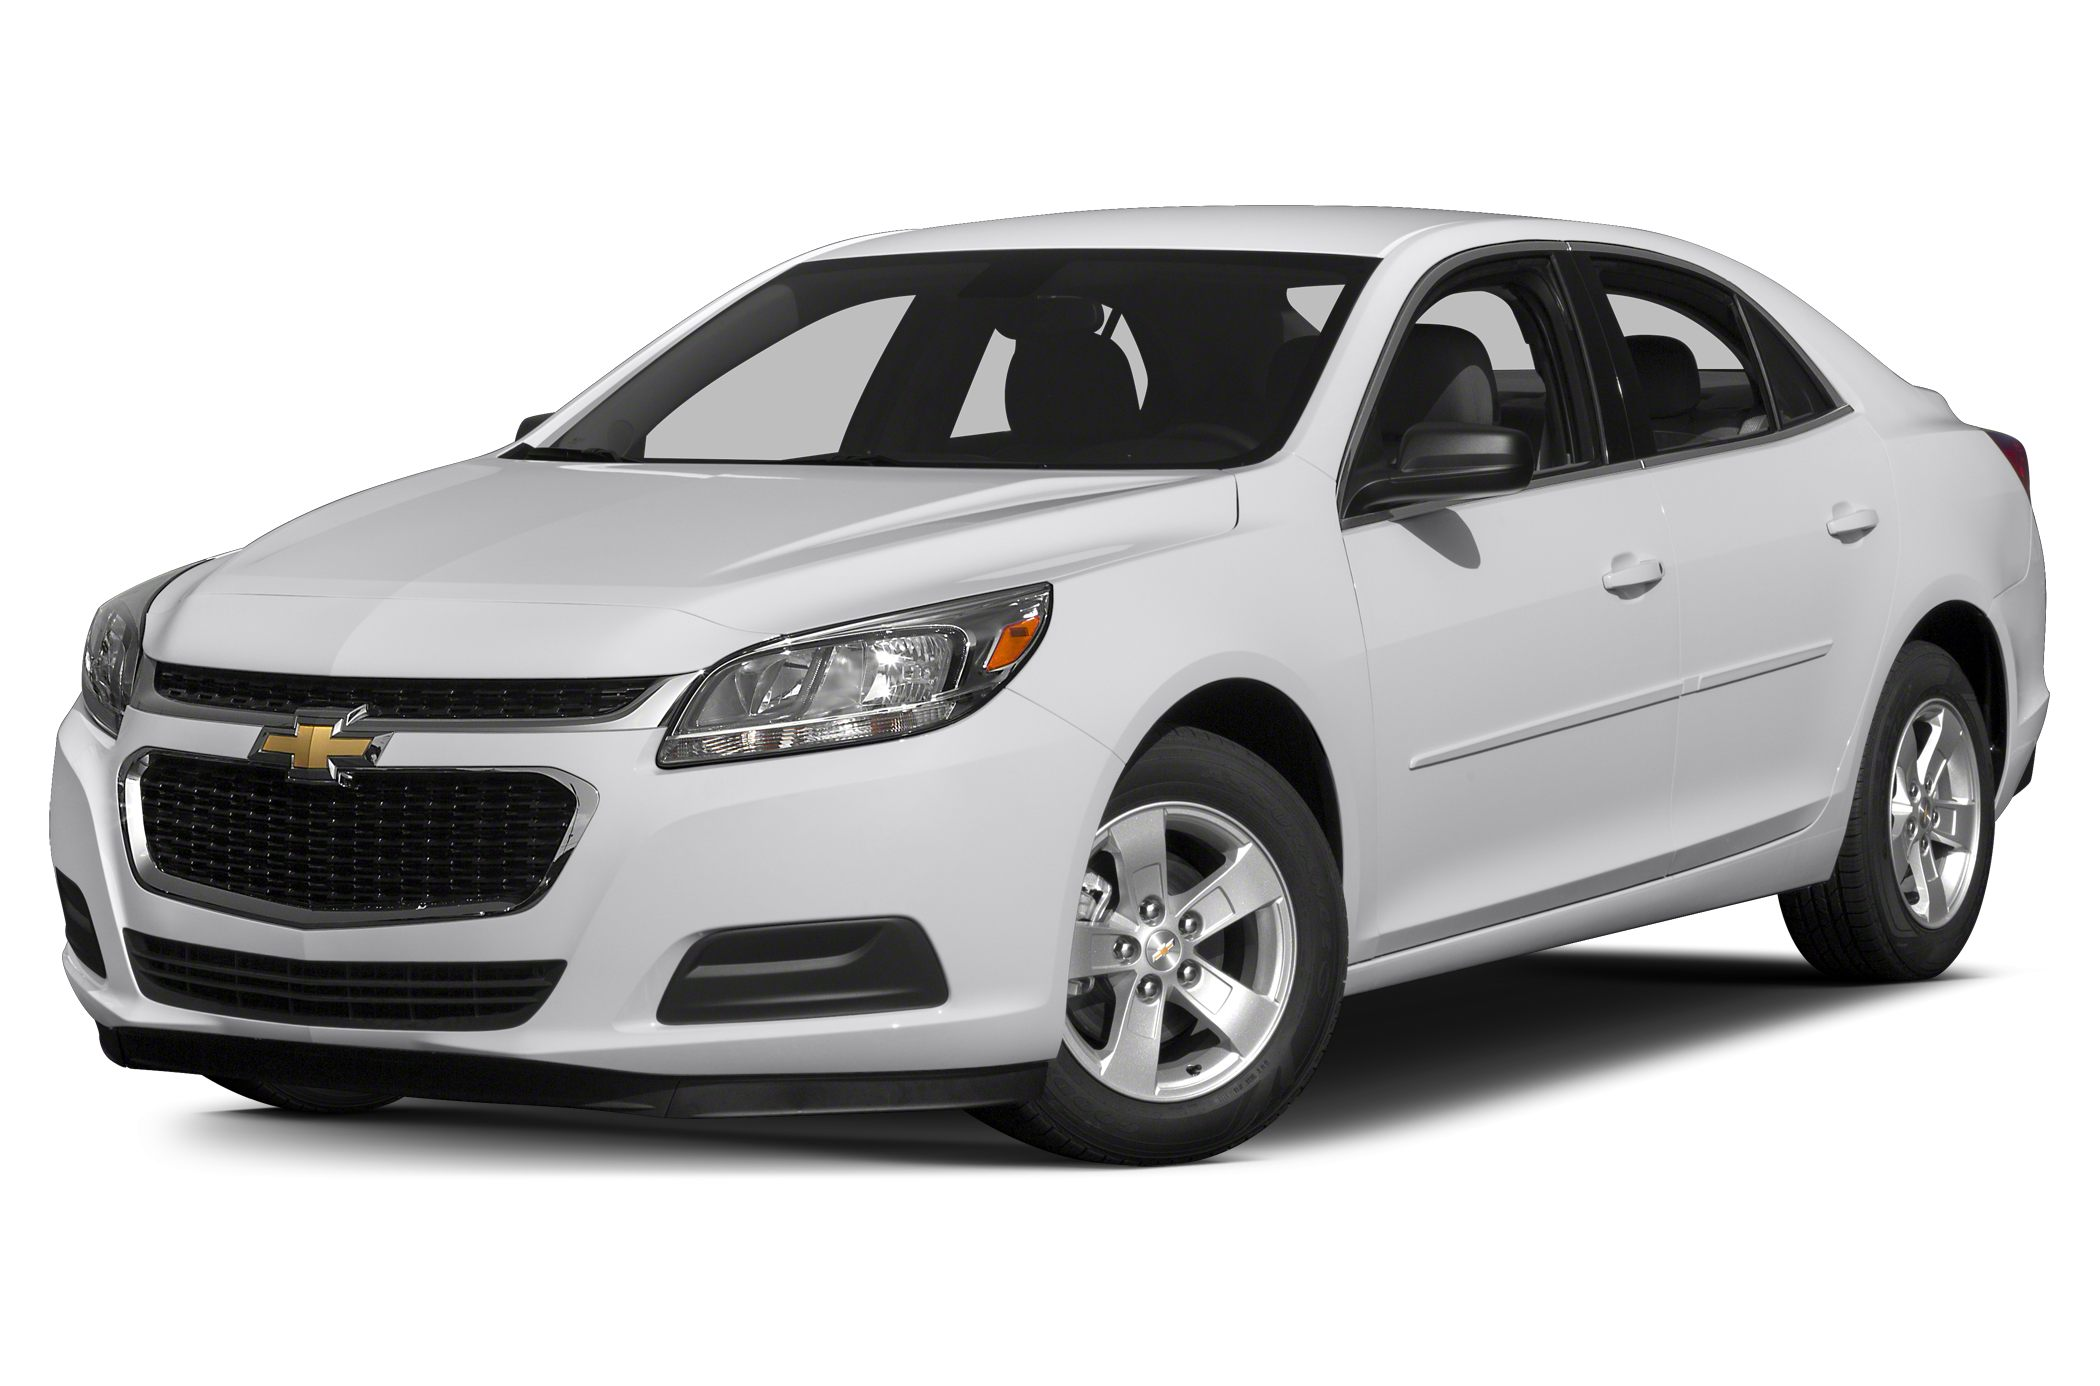 2015 Chevrolet Malibu 1LT Sedan for sale in Andover for $27,480 with 0 miles.